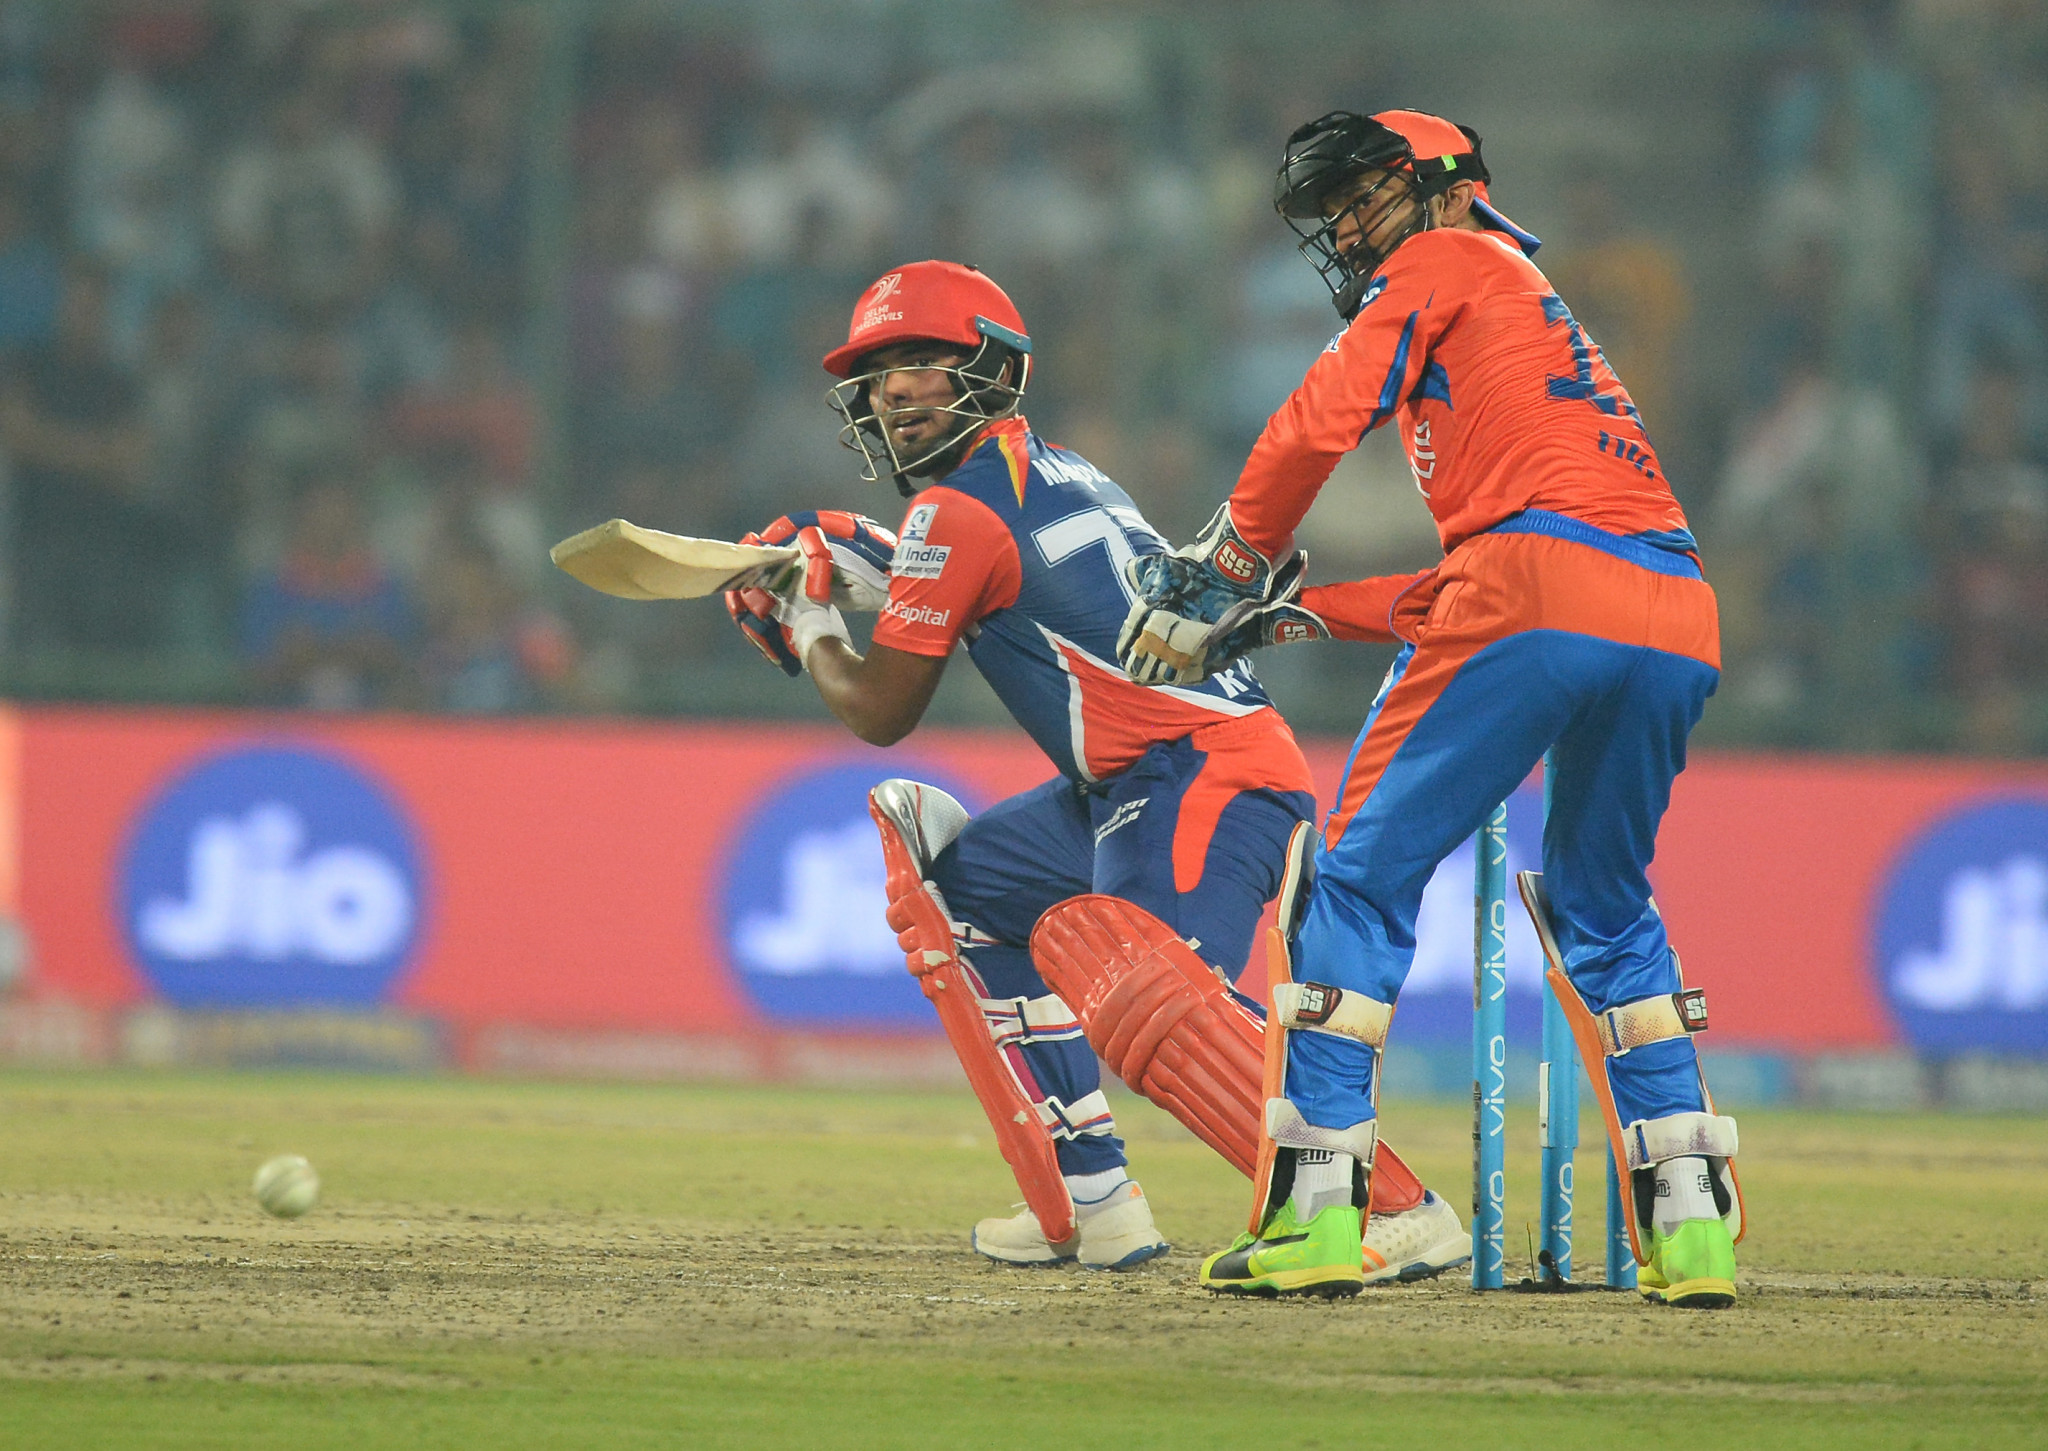 Indian Premier League cricket could be cancelled due to coronavirus lockdown